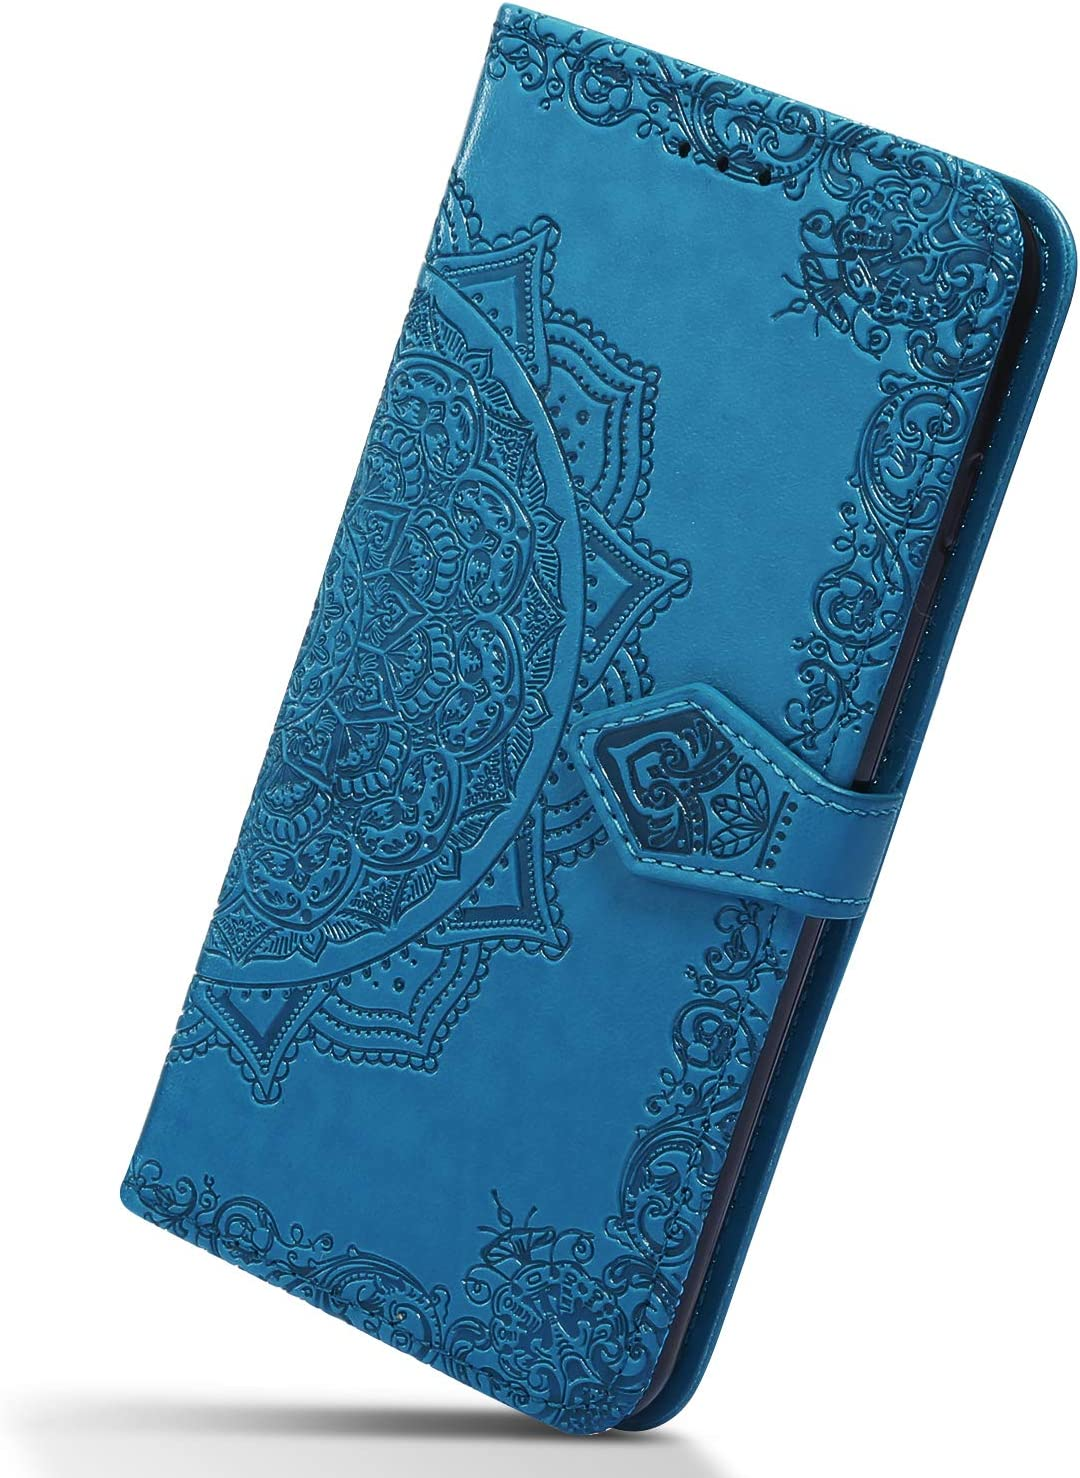 Herbests Compatible with Samsung Galaxy S10 Wallet Flip Case 3D Embossed Mandala Flower Leather Wallet Case Shockproof Slim Protective Phone Cover with Kickstand Card Holders,Blue